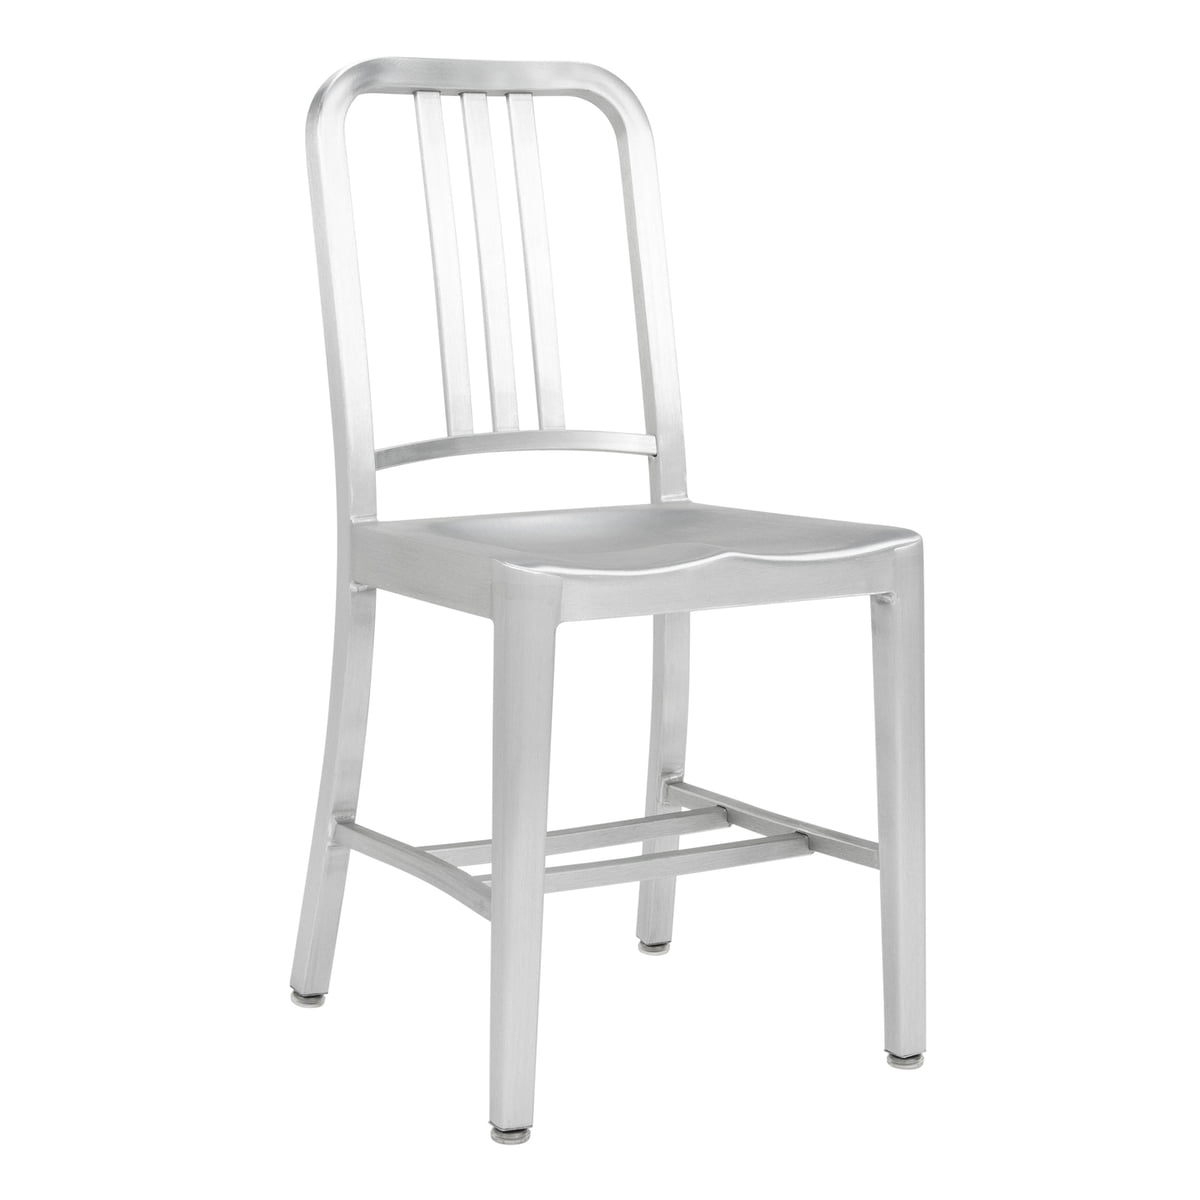 emeco navy chair emeco shop rh connox co uk